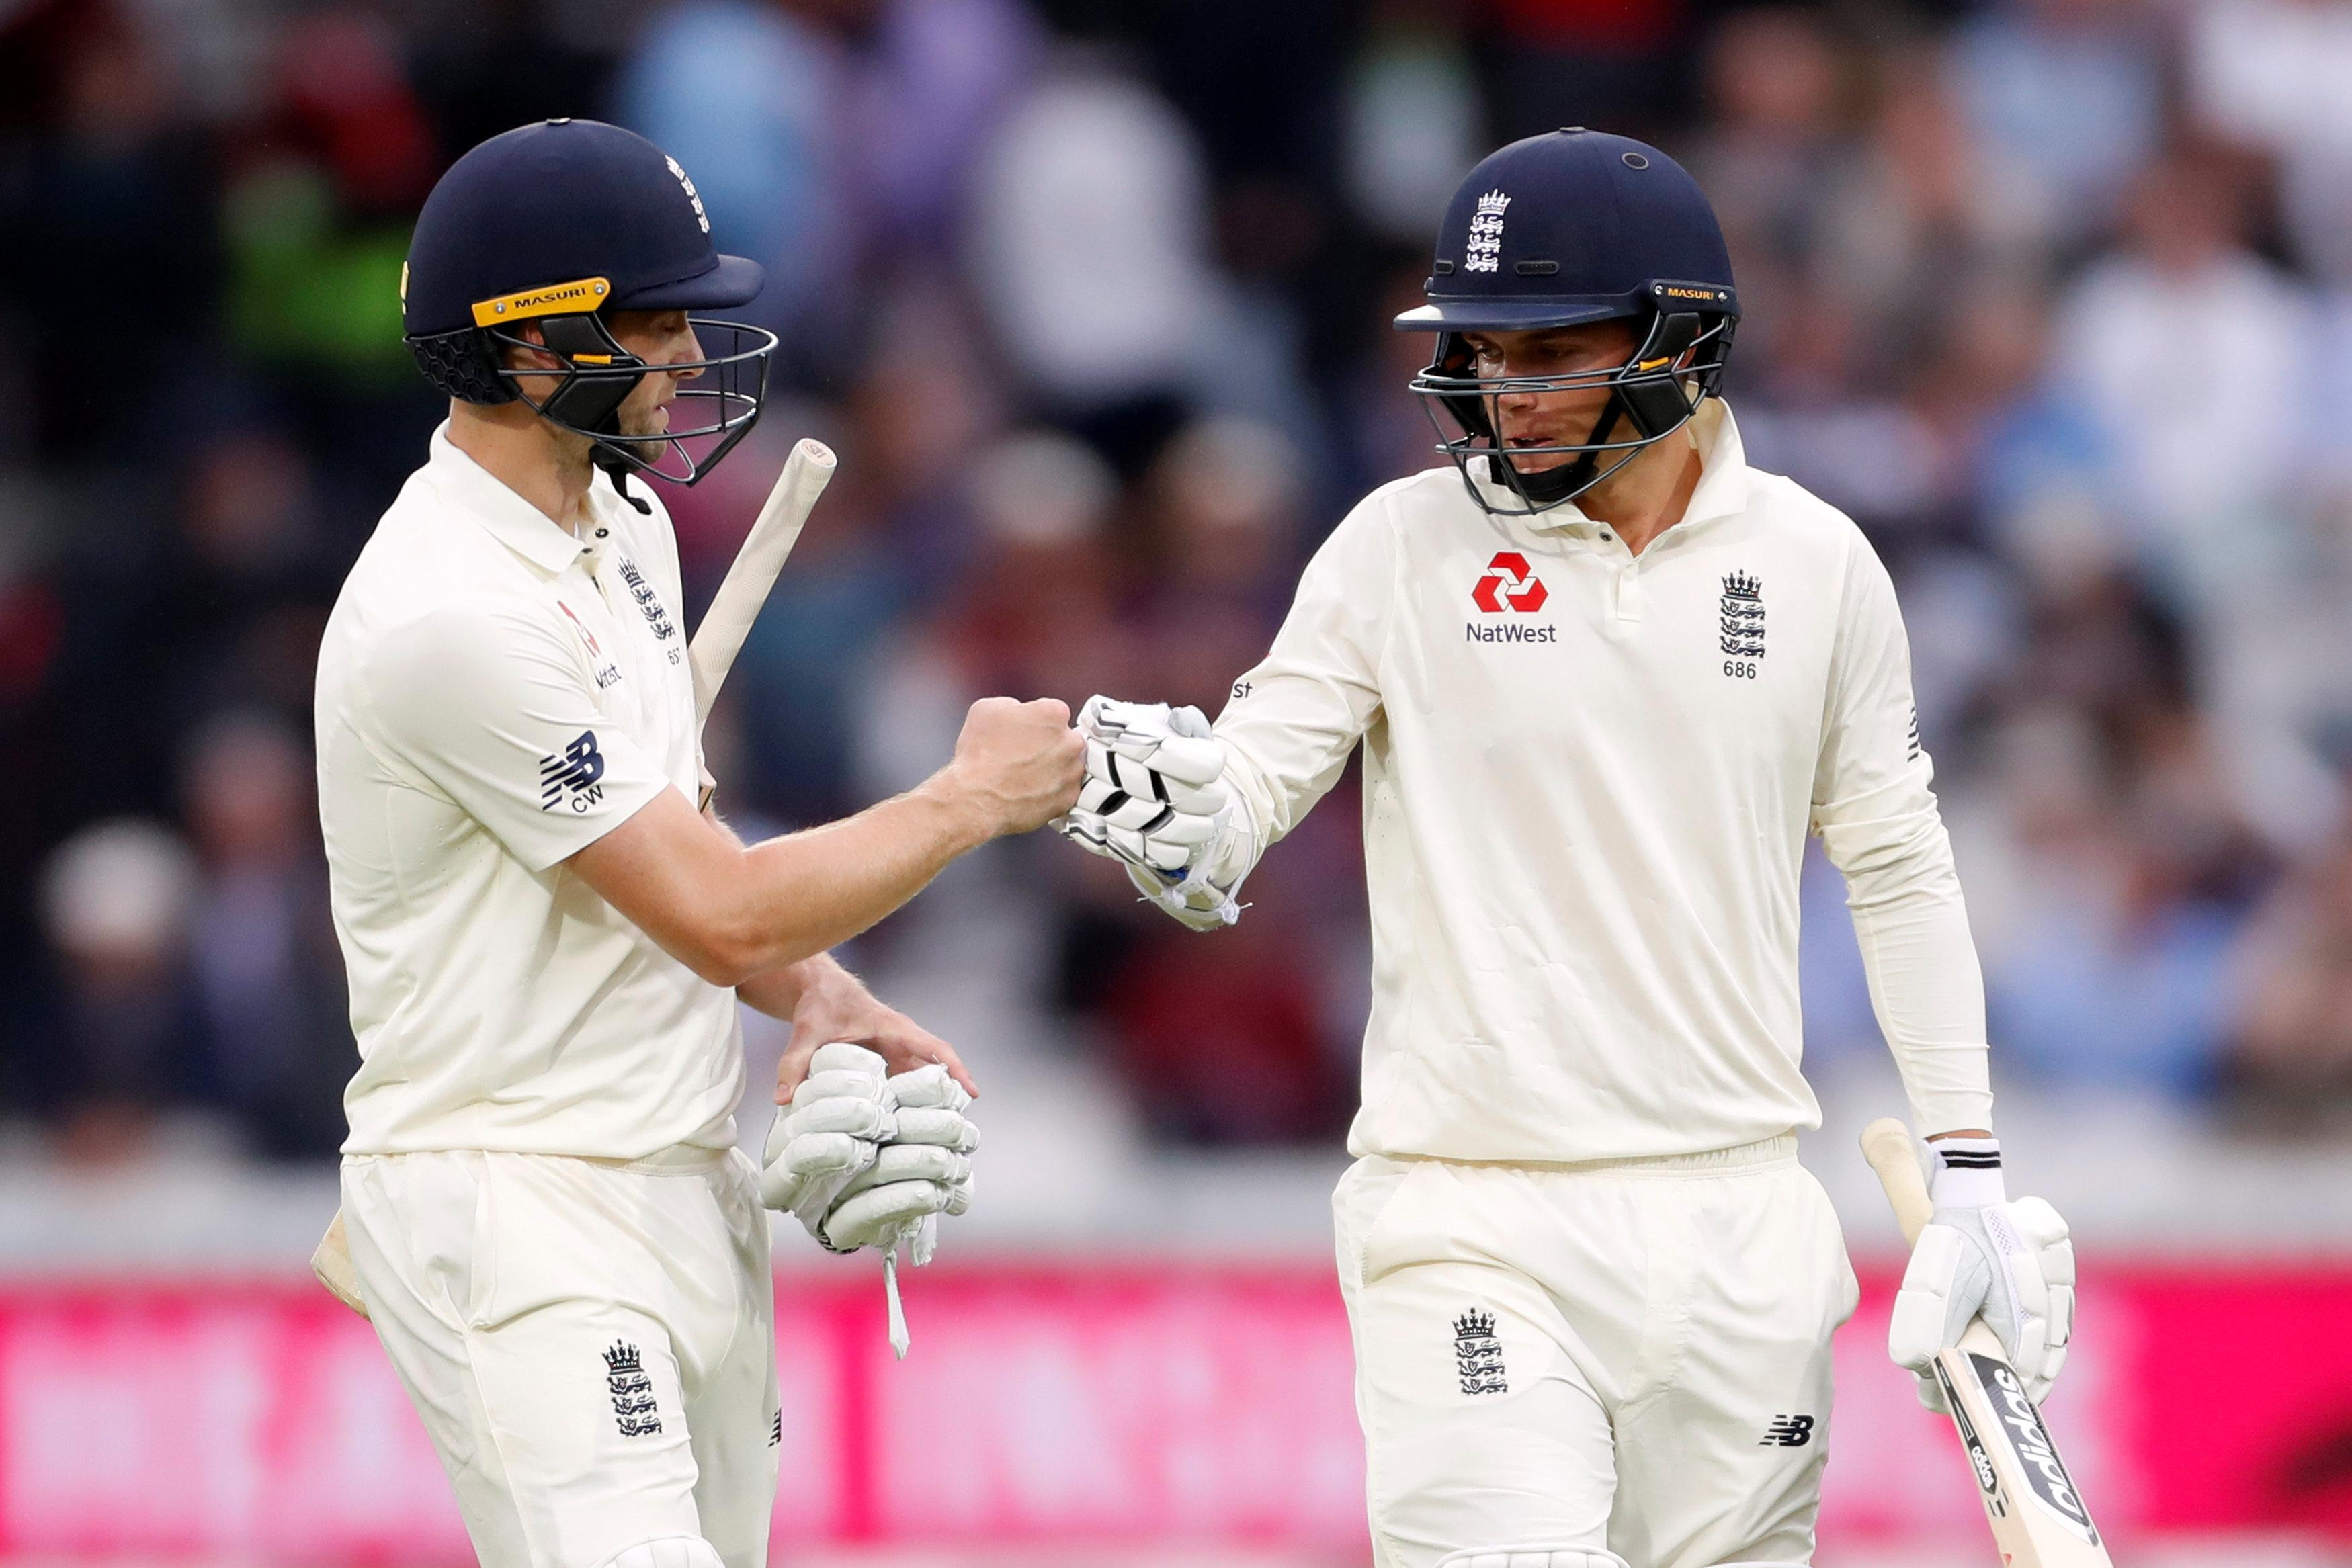 Curran and Woakes ended the day in the middle together, with Curran on 22 and Woakes on 120